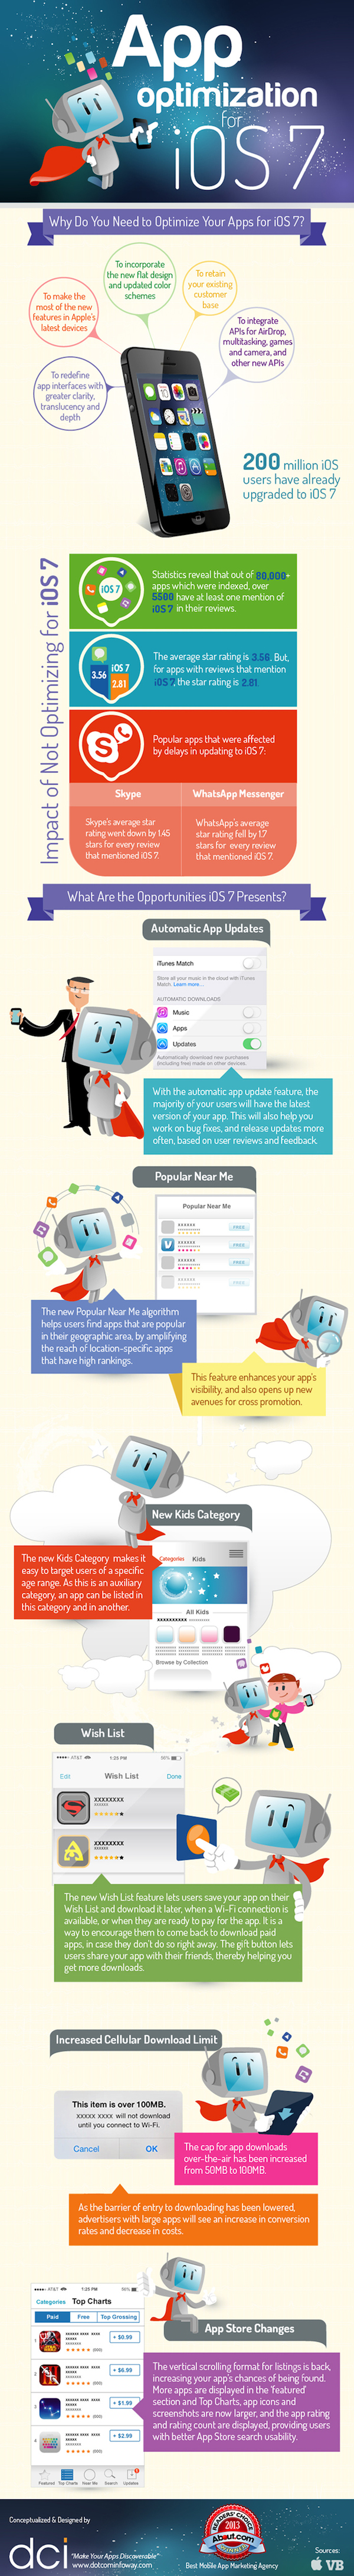 infographic-app-optimization-for-ios7